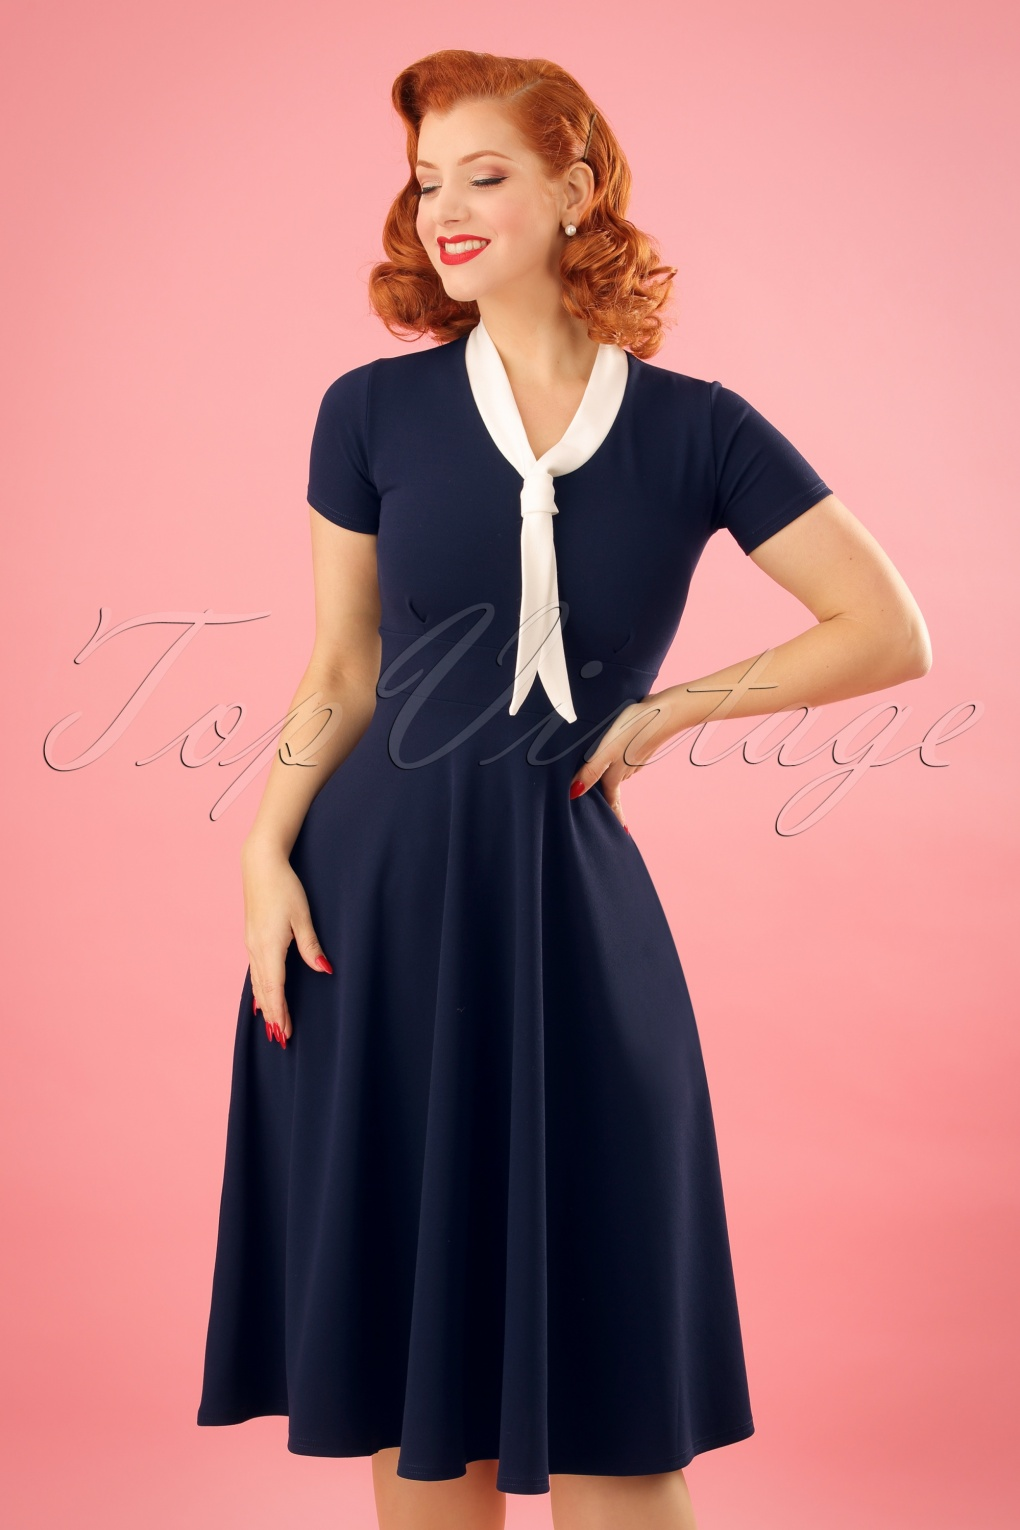 Sailor Dresses, Nautical Dress, Pin Up & WW2 Dresses 50s Lillie Swing Dress in Navy and Ivory £48.14 AT vintagedancer.com